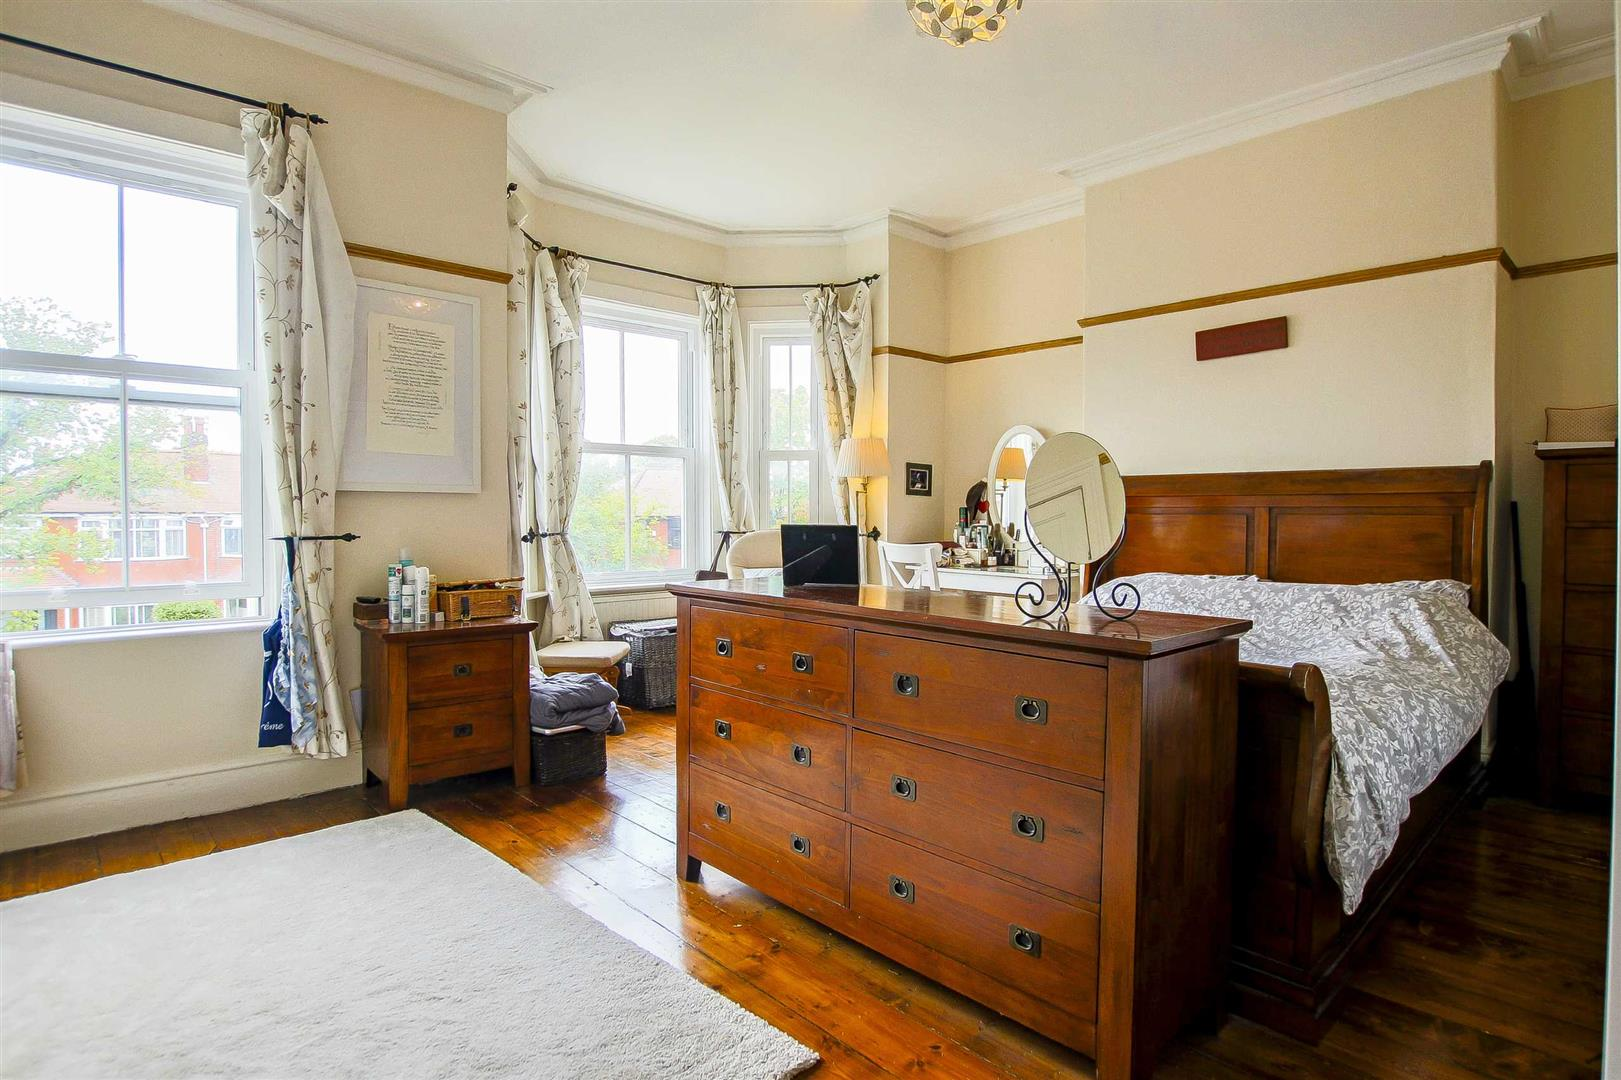 5 Bedroom Terraced House For Sale - Image 5